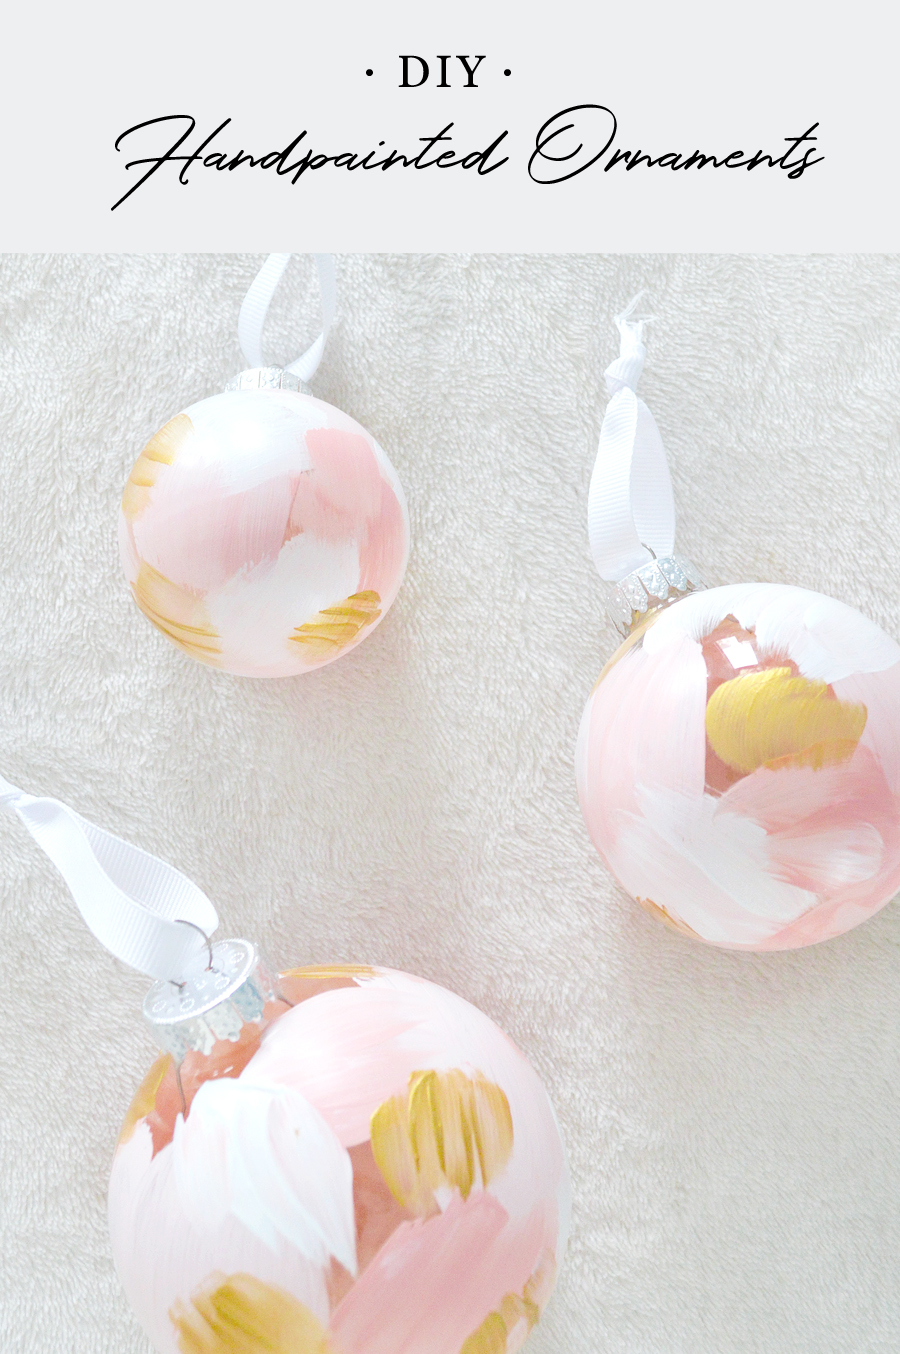 DIY Handpainted Ornaments with Kristen Laczi